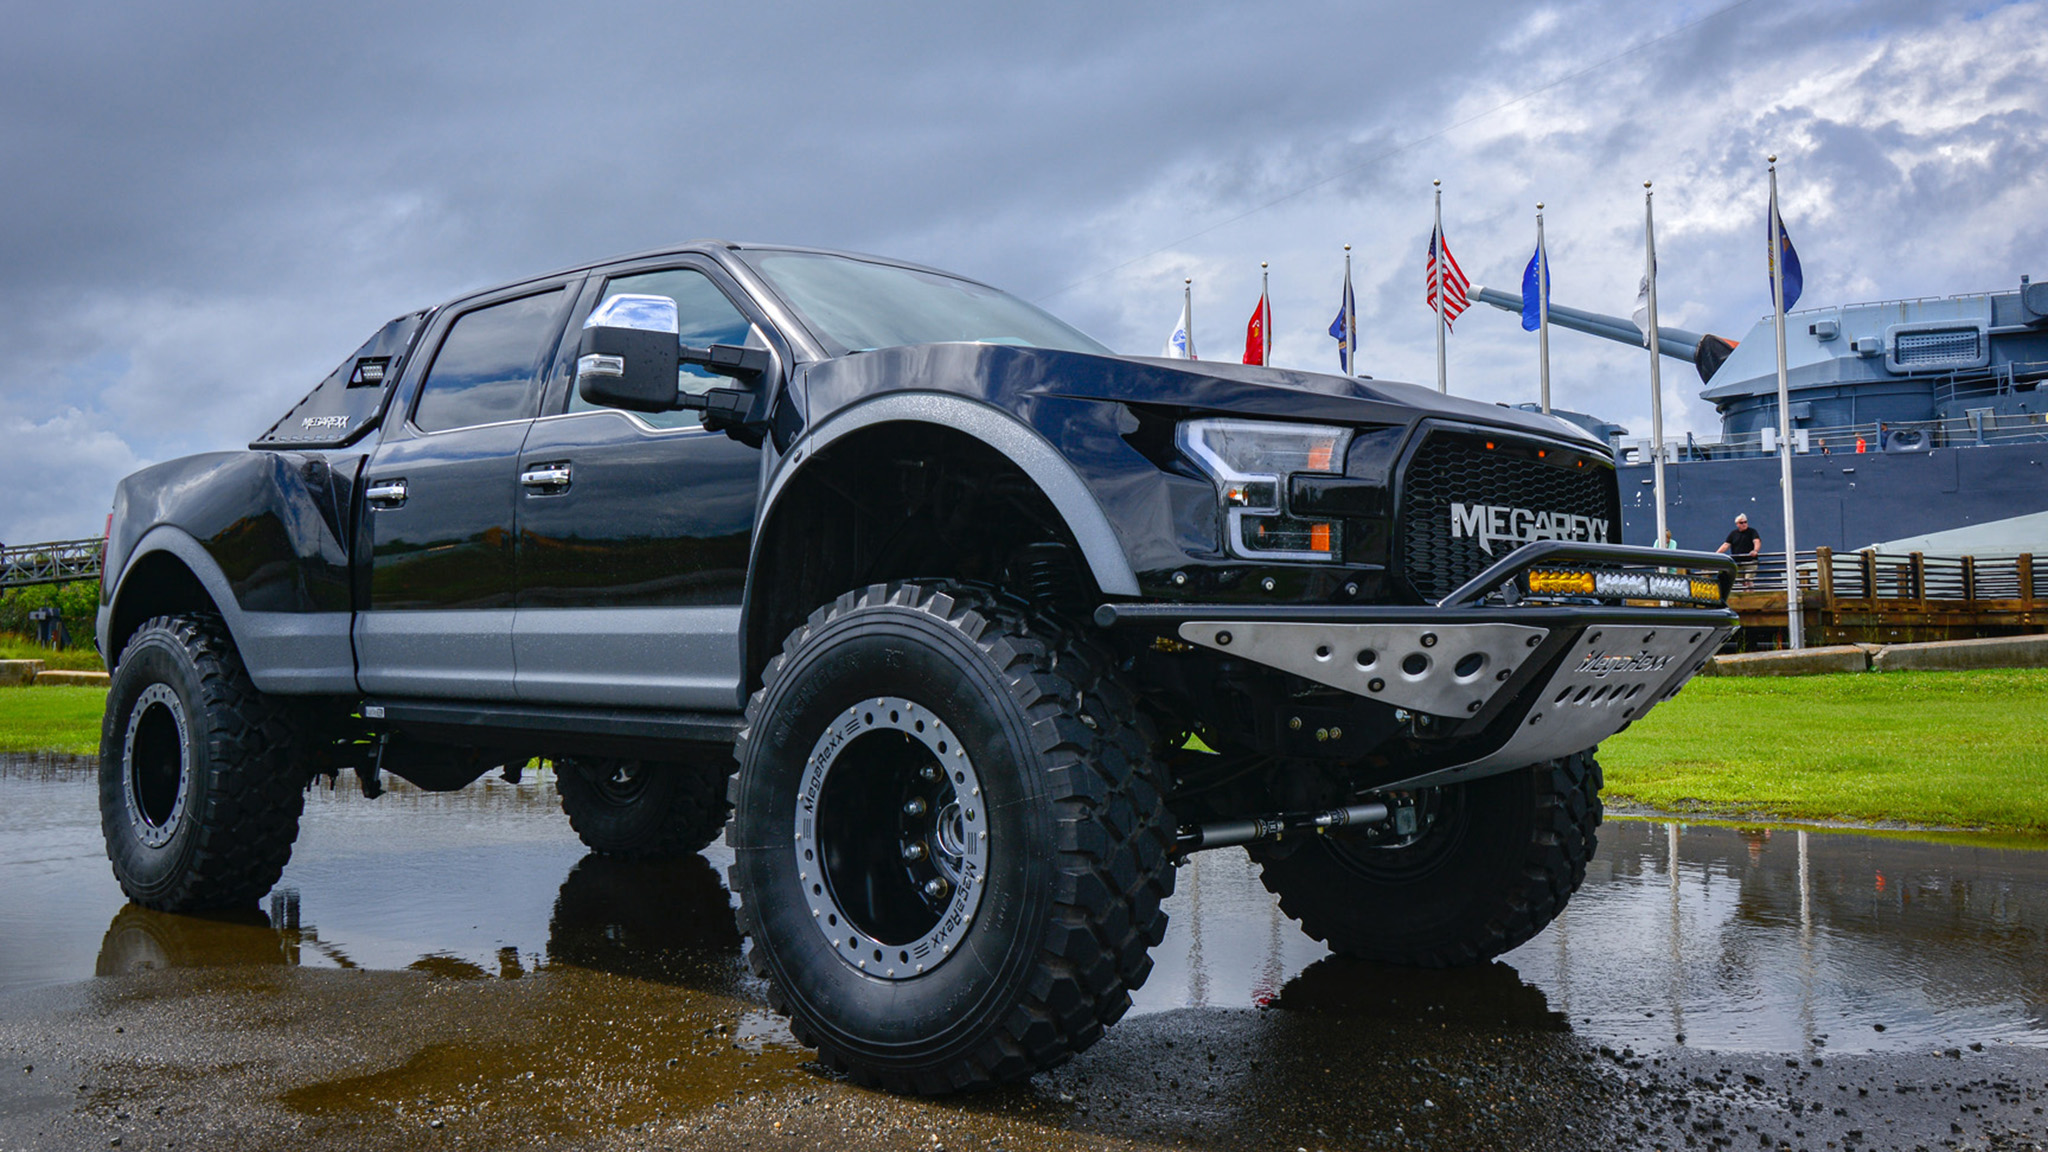 Your Ford Raptor Is Too Small—Meet the MegaRexx MegaRaptor